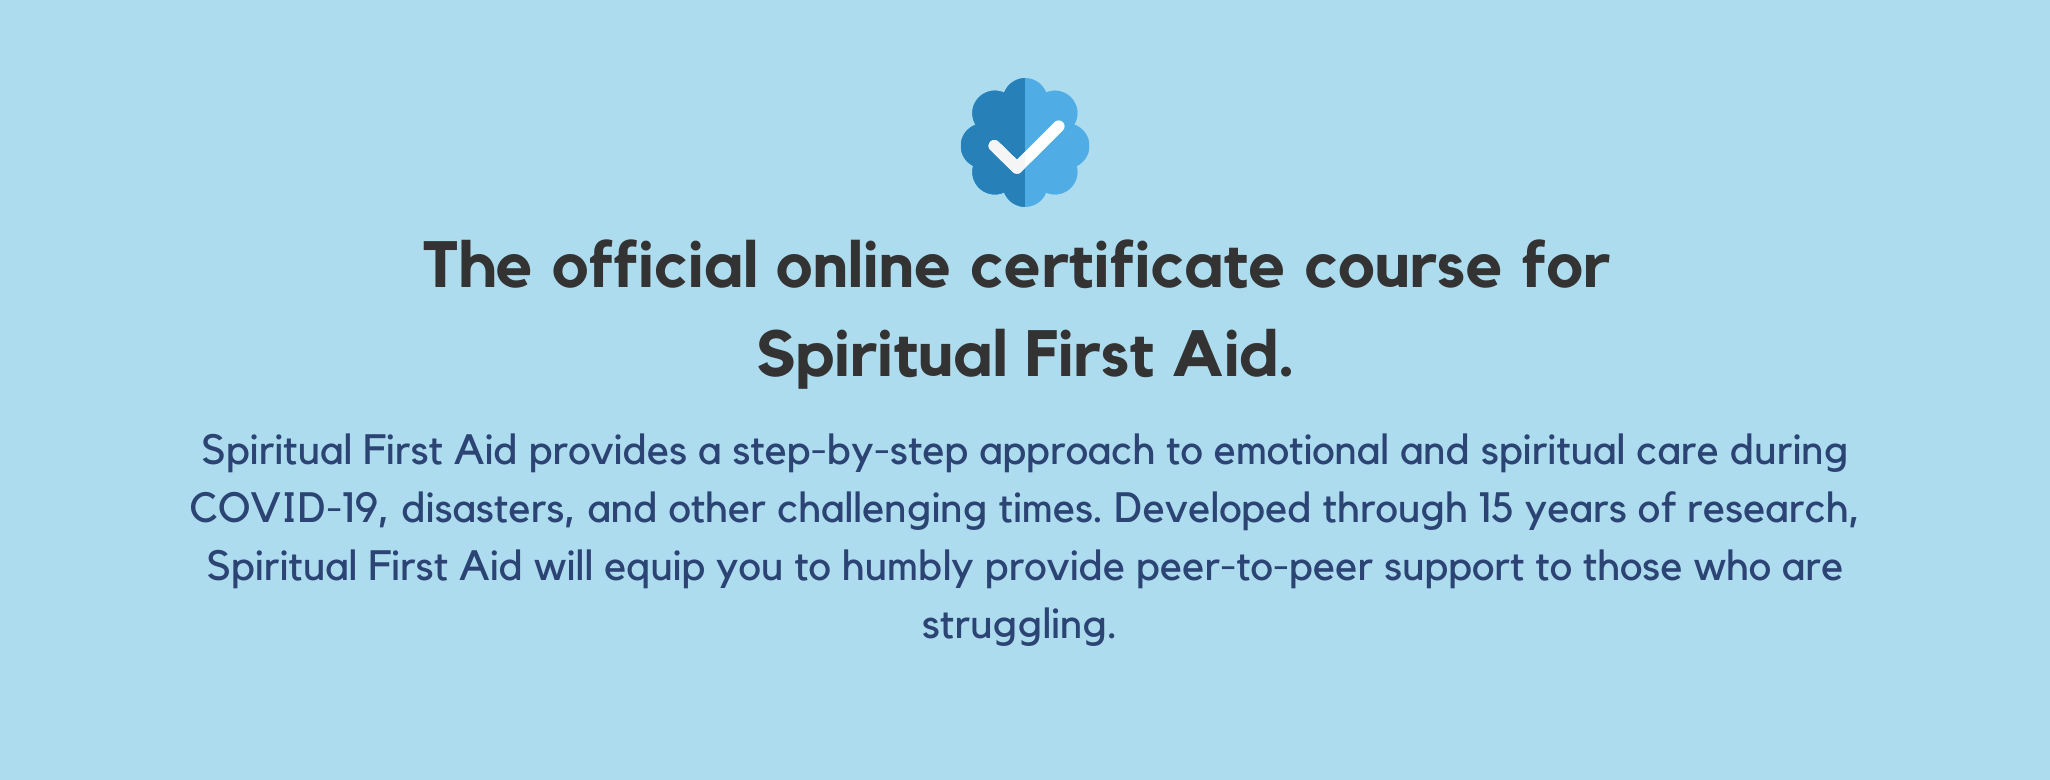 Spiritual First Aid provides a step-by-step approach to emotional and spiritual care during times of crisis.